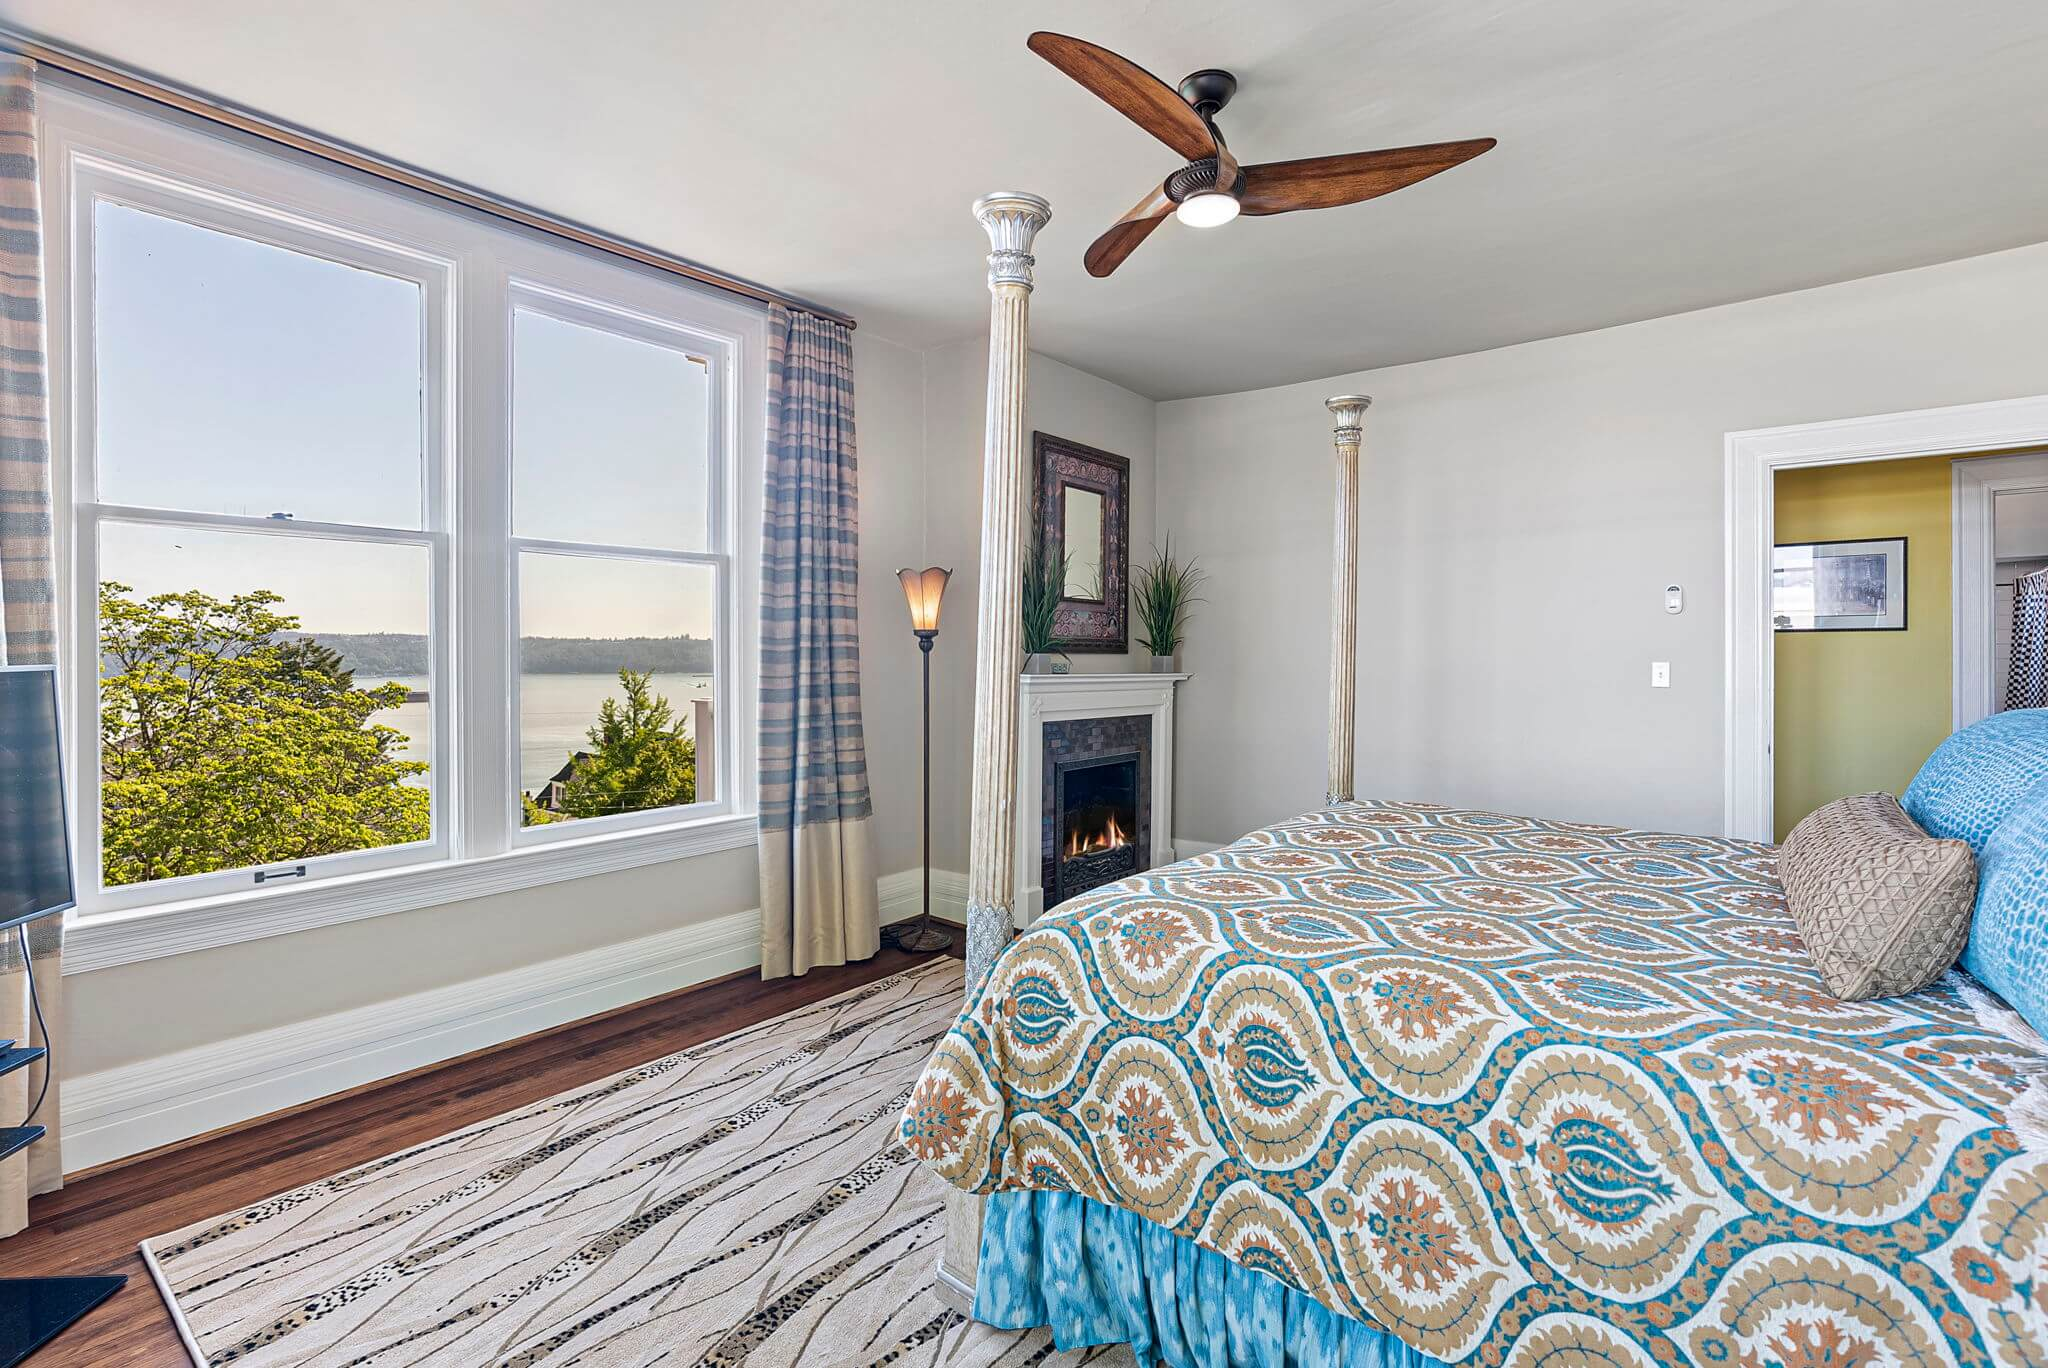 Bedroom #4 offers a great water view